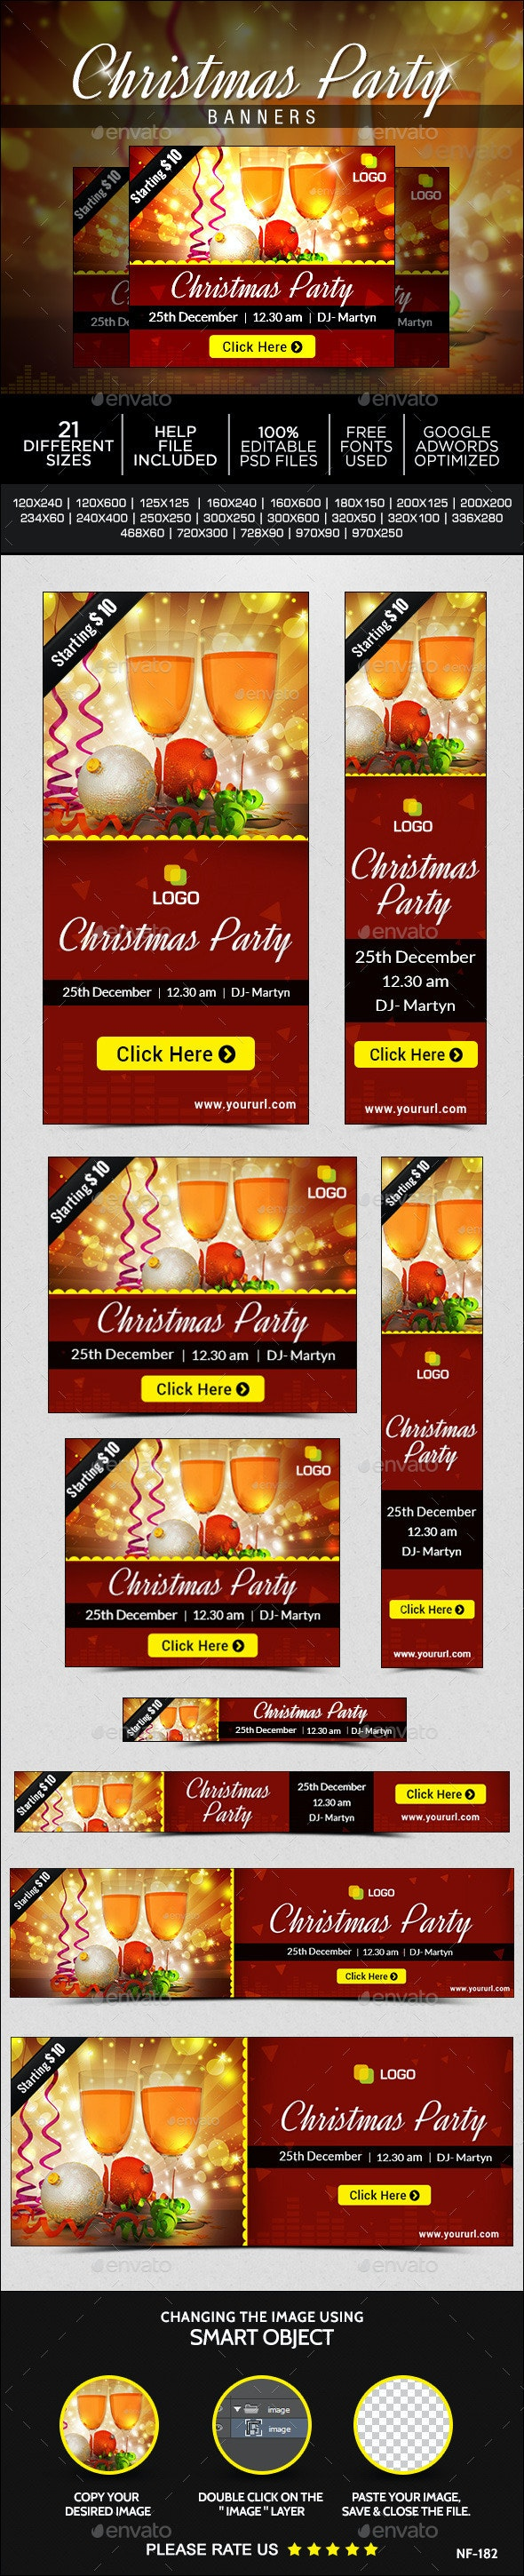 Christmas  Party Banners - Banners & Ads Web Elements